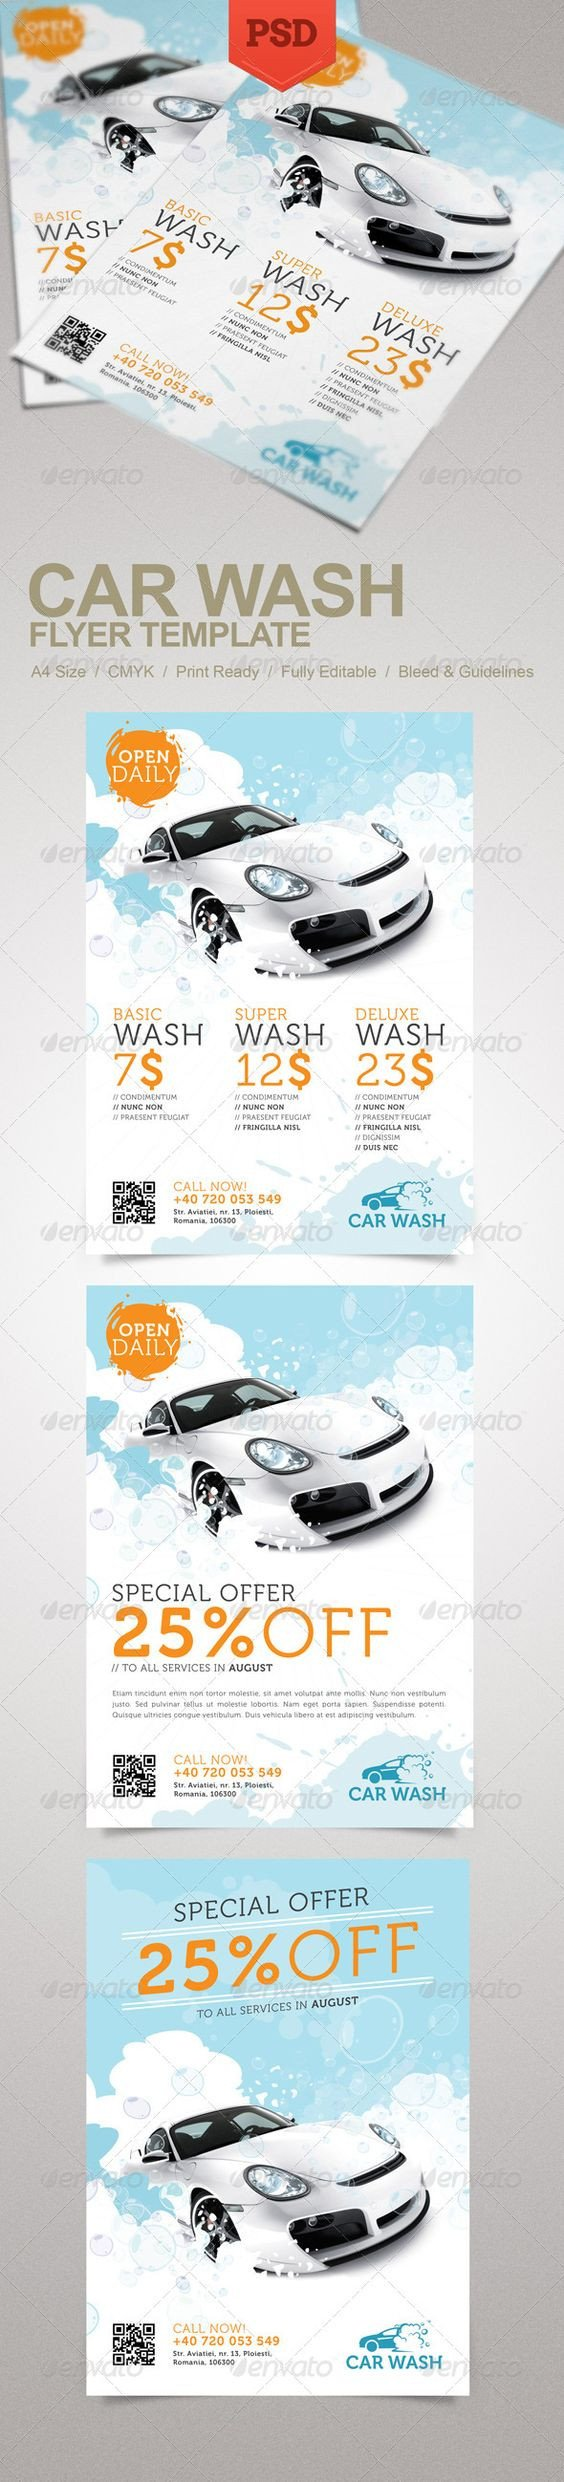 Auto Detailing Flyer Template Car Wash Flyer